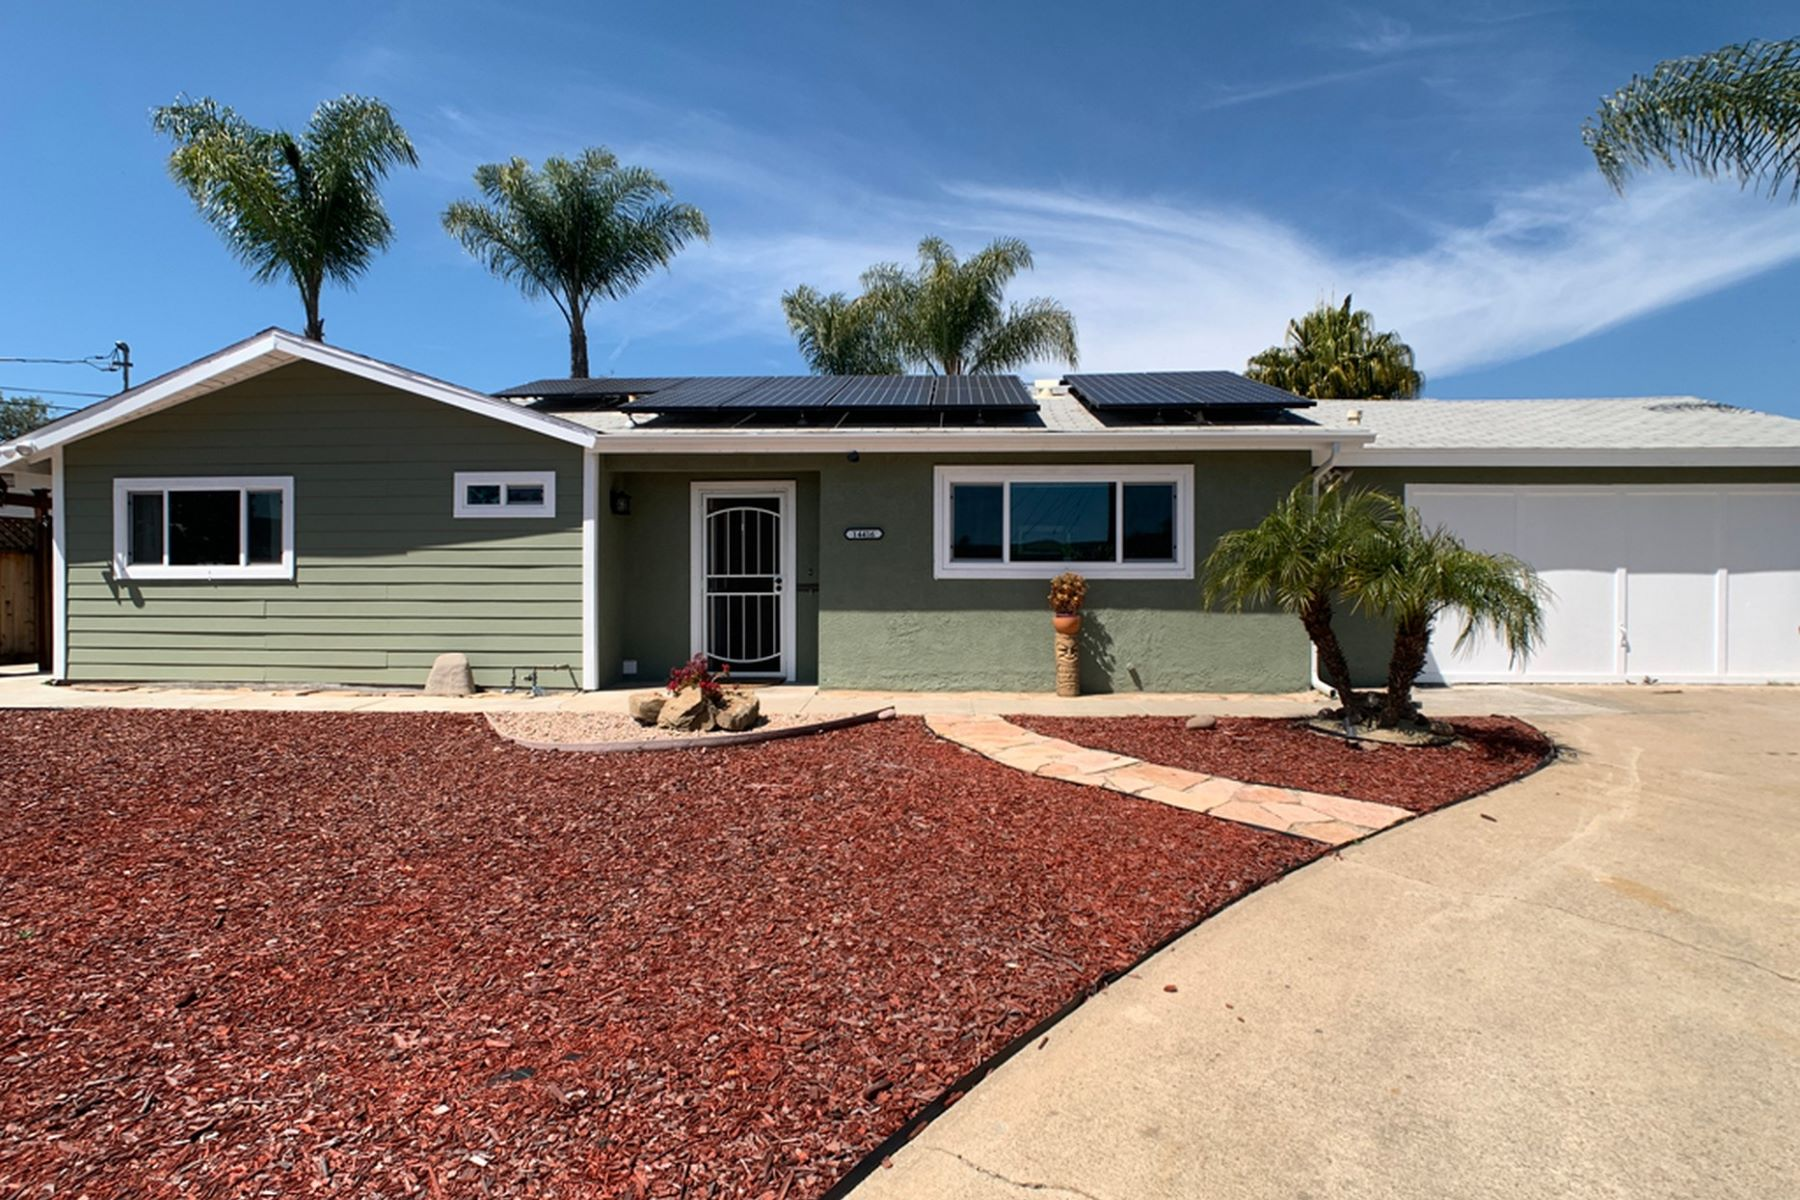 Single Family Homes for Active at Your Own Private Paradise 14416 Springvale St Poway, California 92064 United States